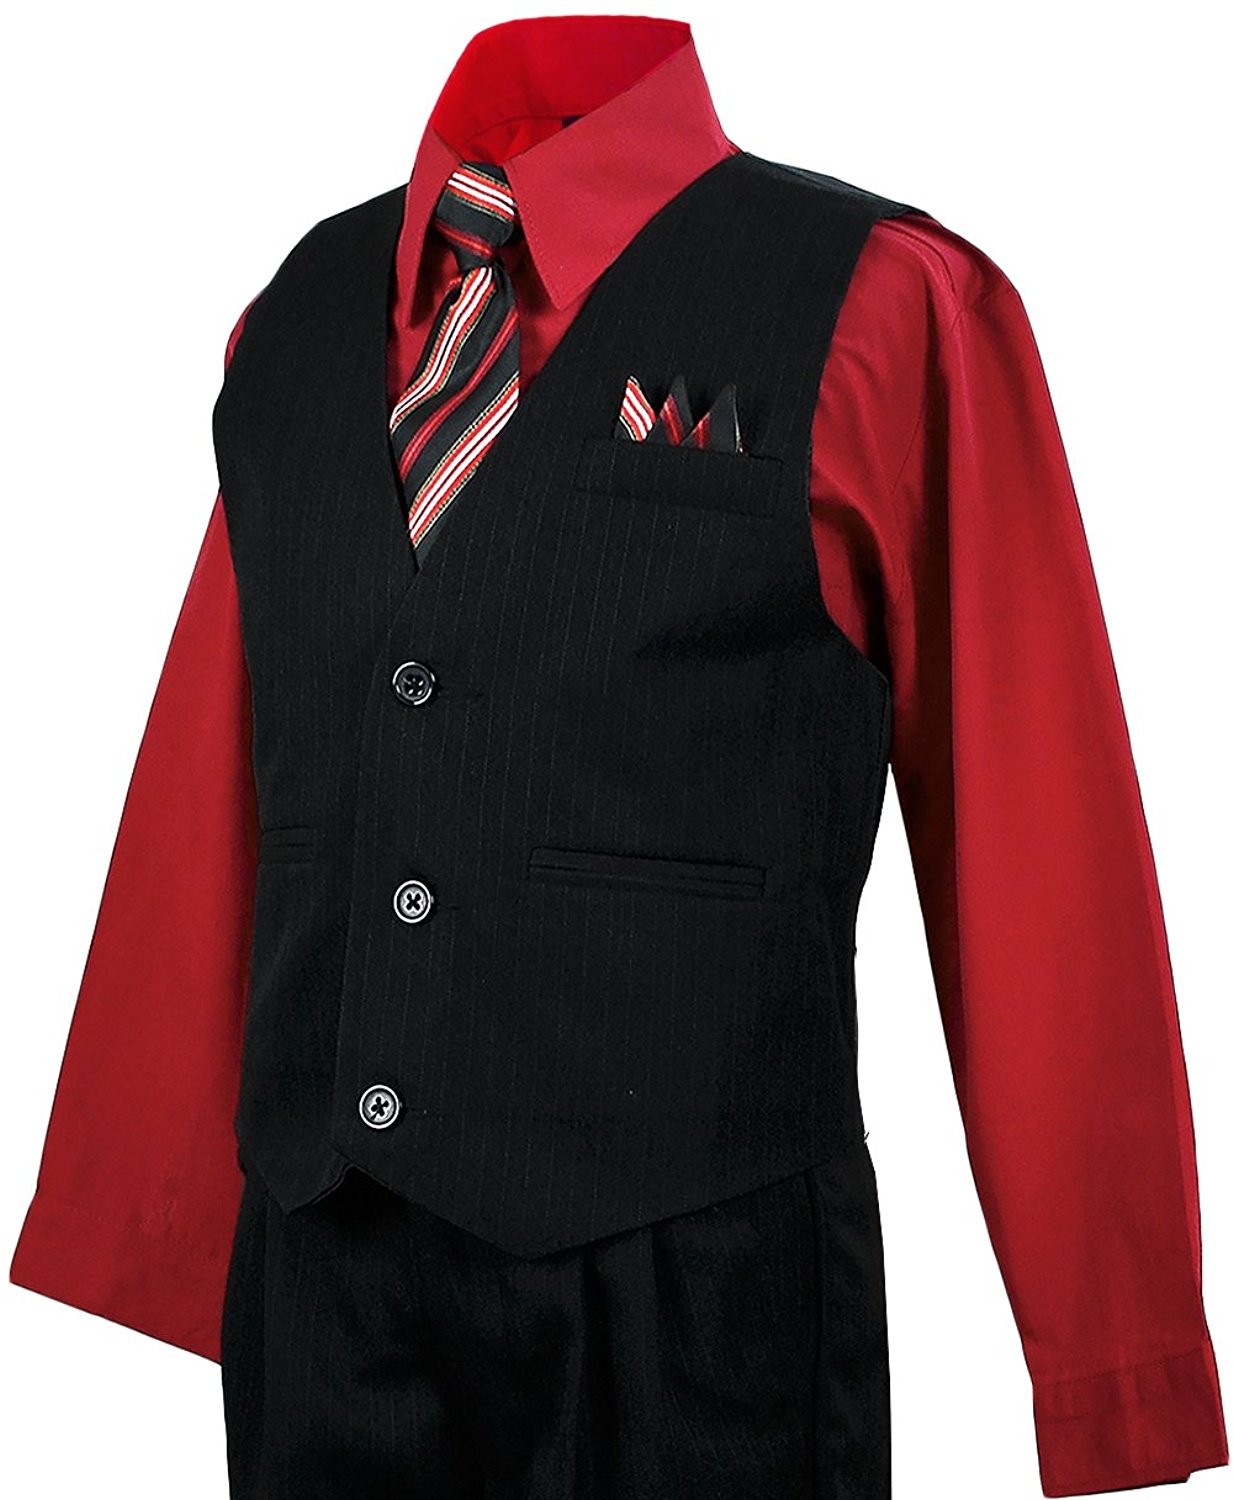 f2f901626 Cheap Red Boys Vest, find Red Boys Vest deals on line at Alibaba.com